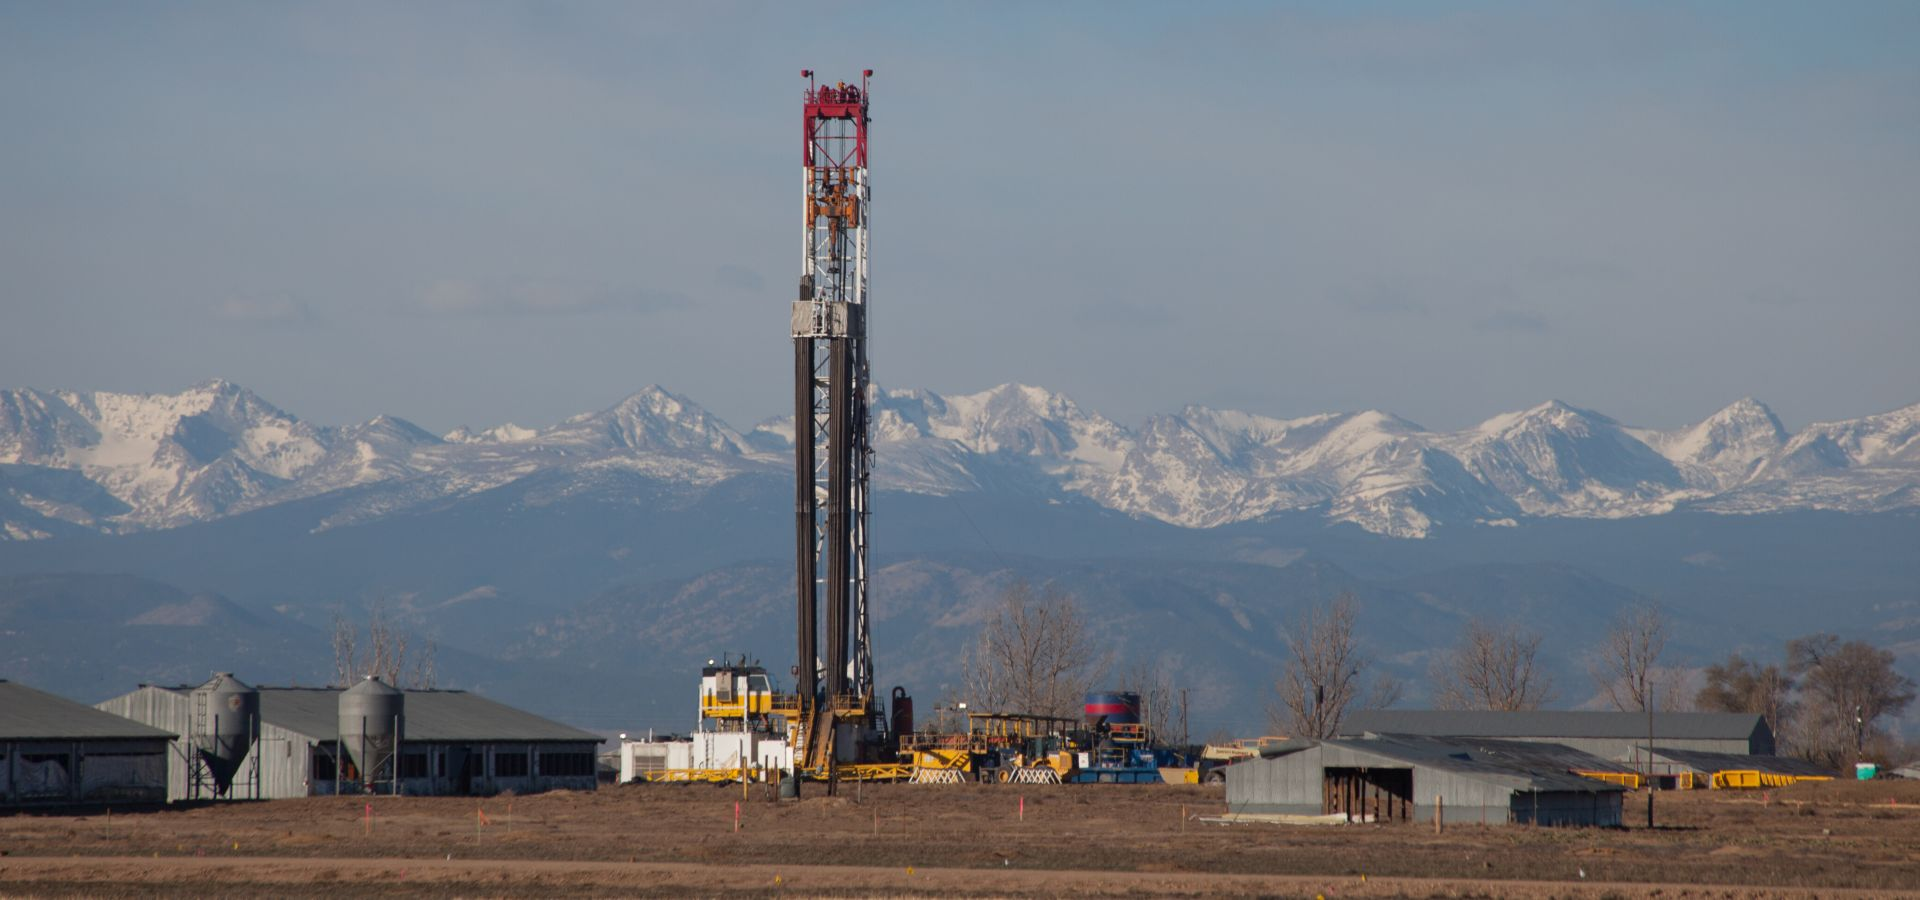 On November 6th,  the votes of Colorado citizens could effectively prevent fracking on almost 85% of private land